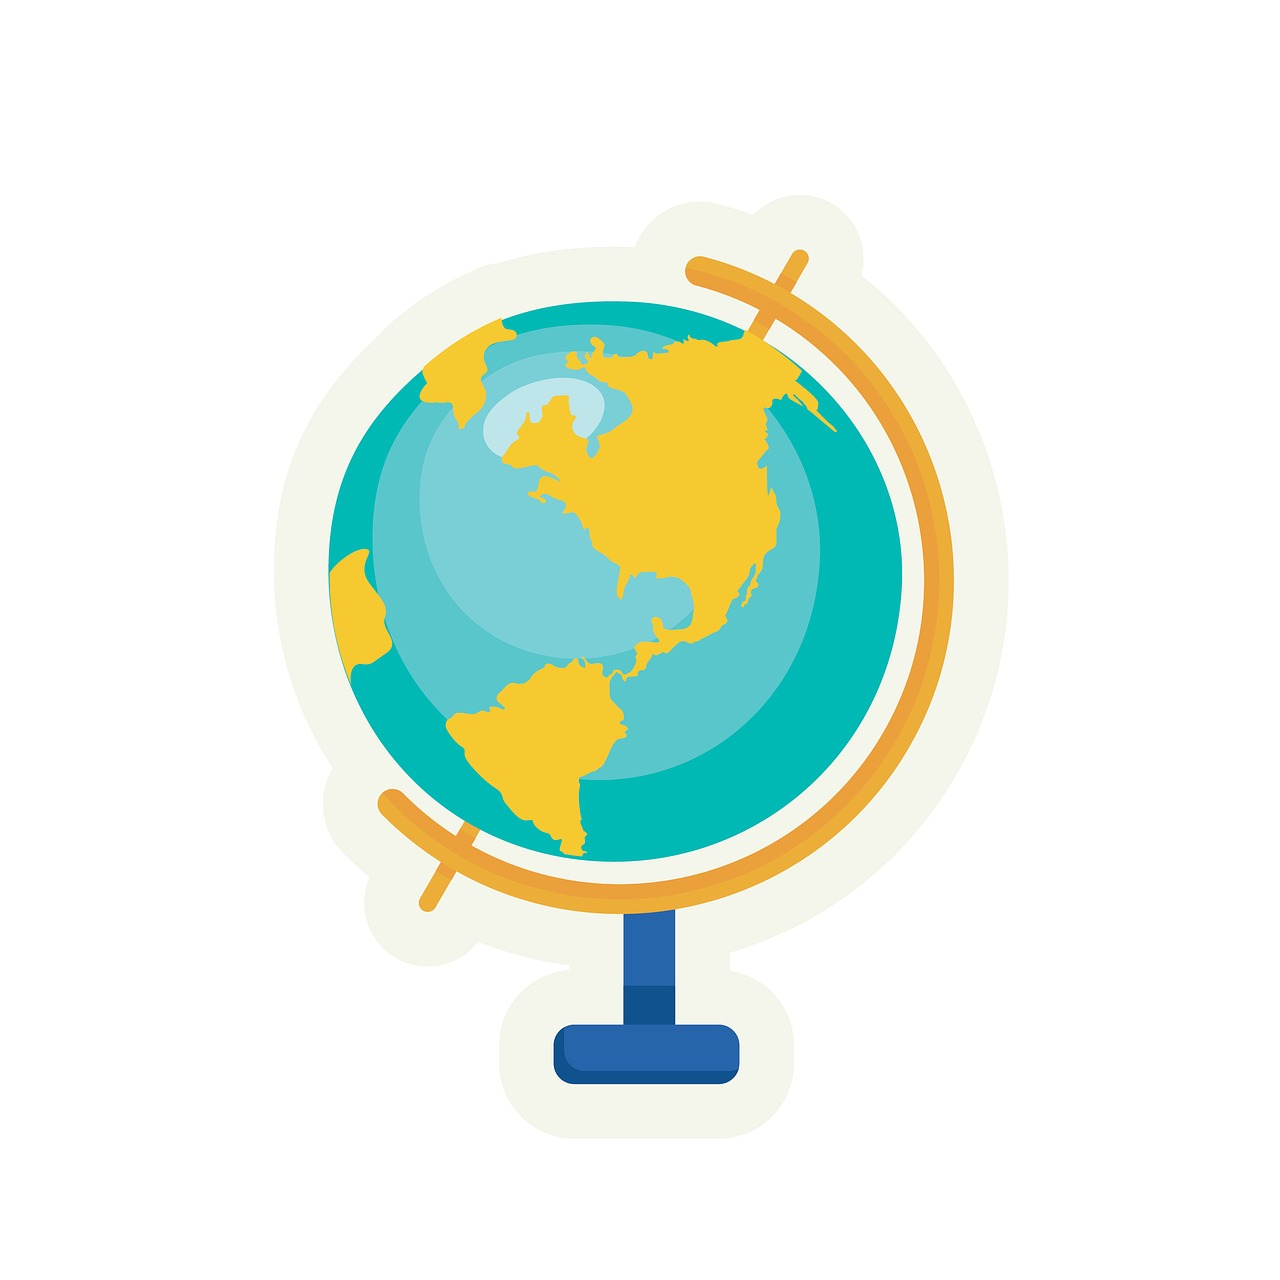 The World Orb Geographic Clip Art Clipart Free Photo From Needpix Com